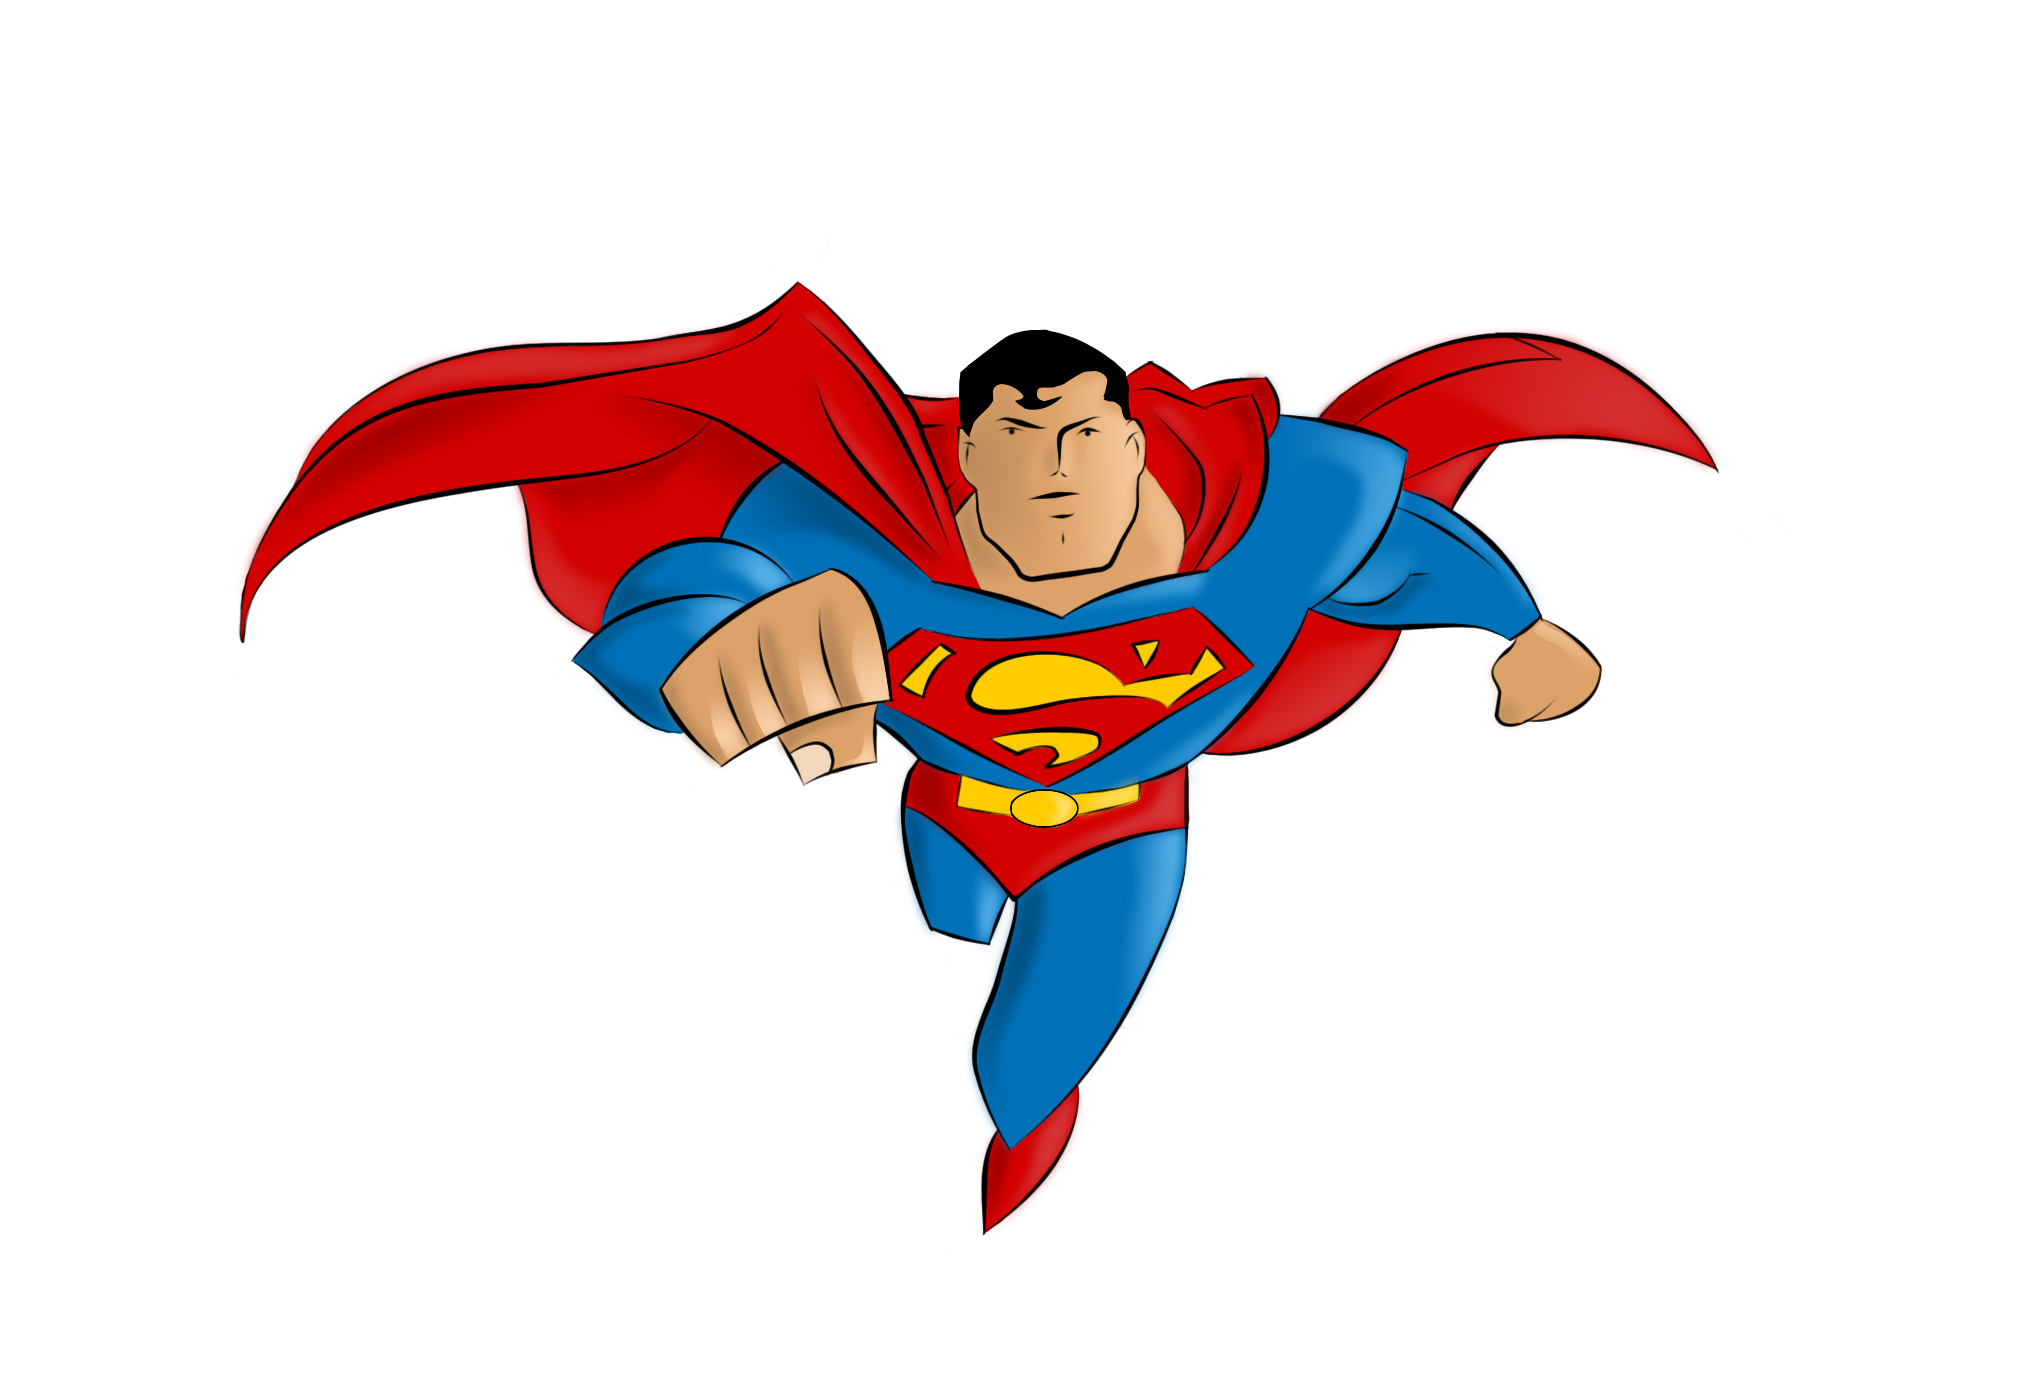 Super man holding clipart image black and white stock Cartoon Superwoman Clipart | Free download best Cartoon ... image black and white stock